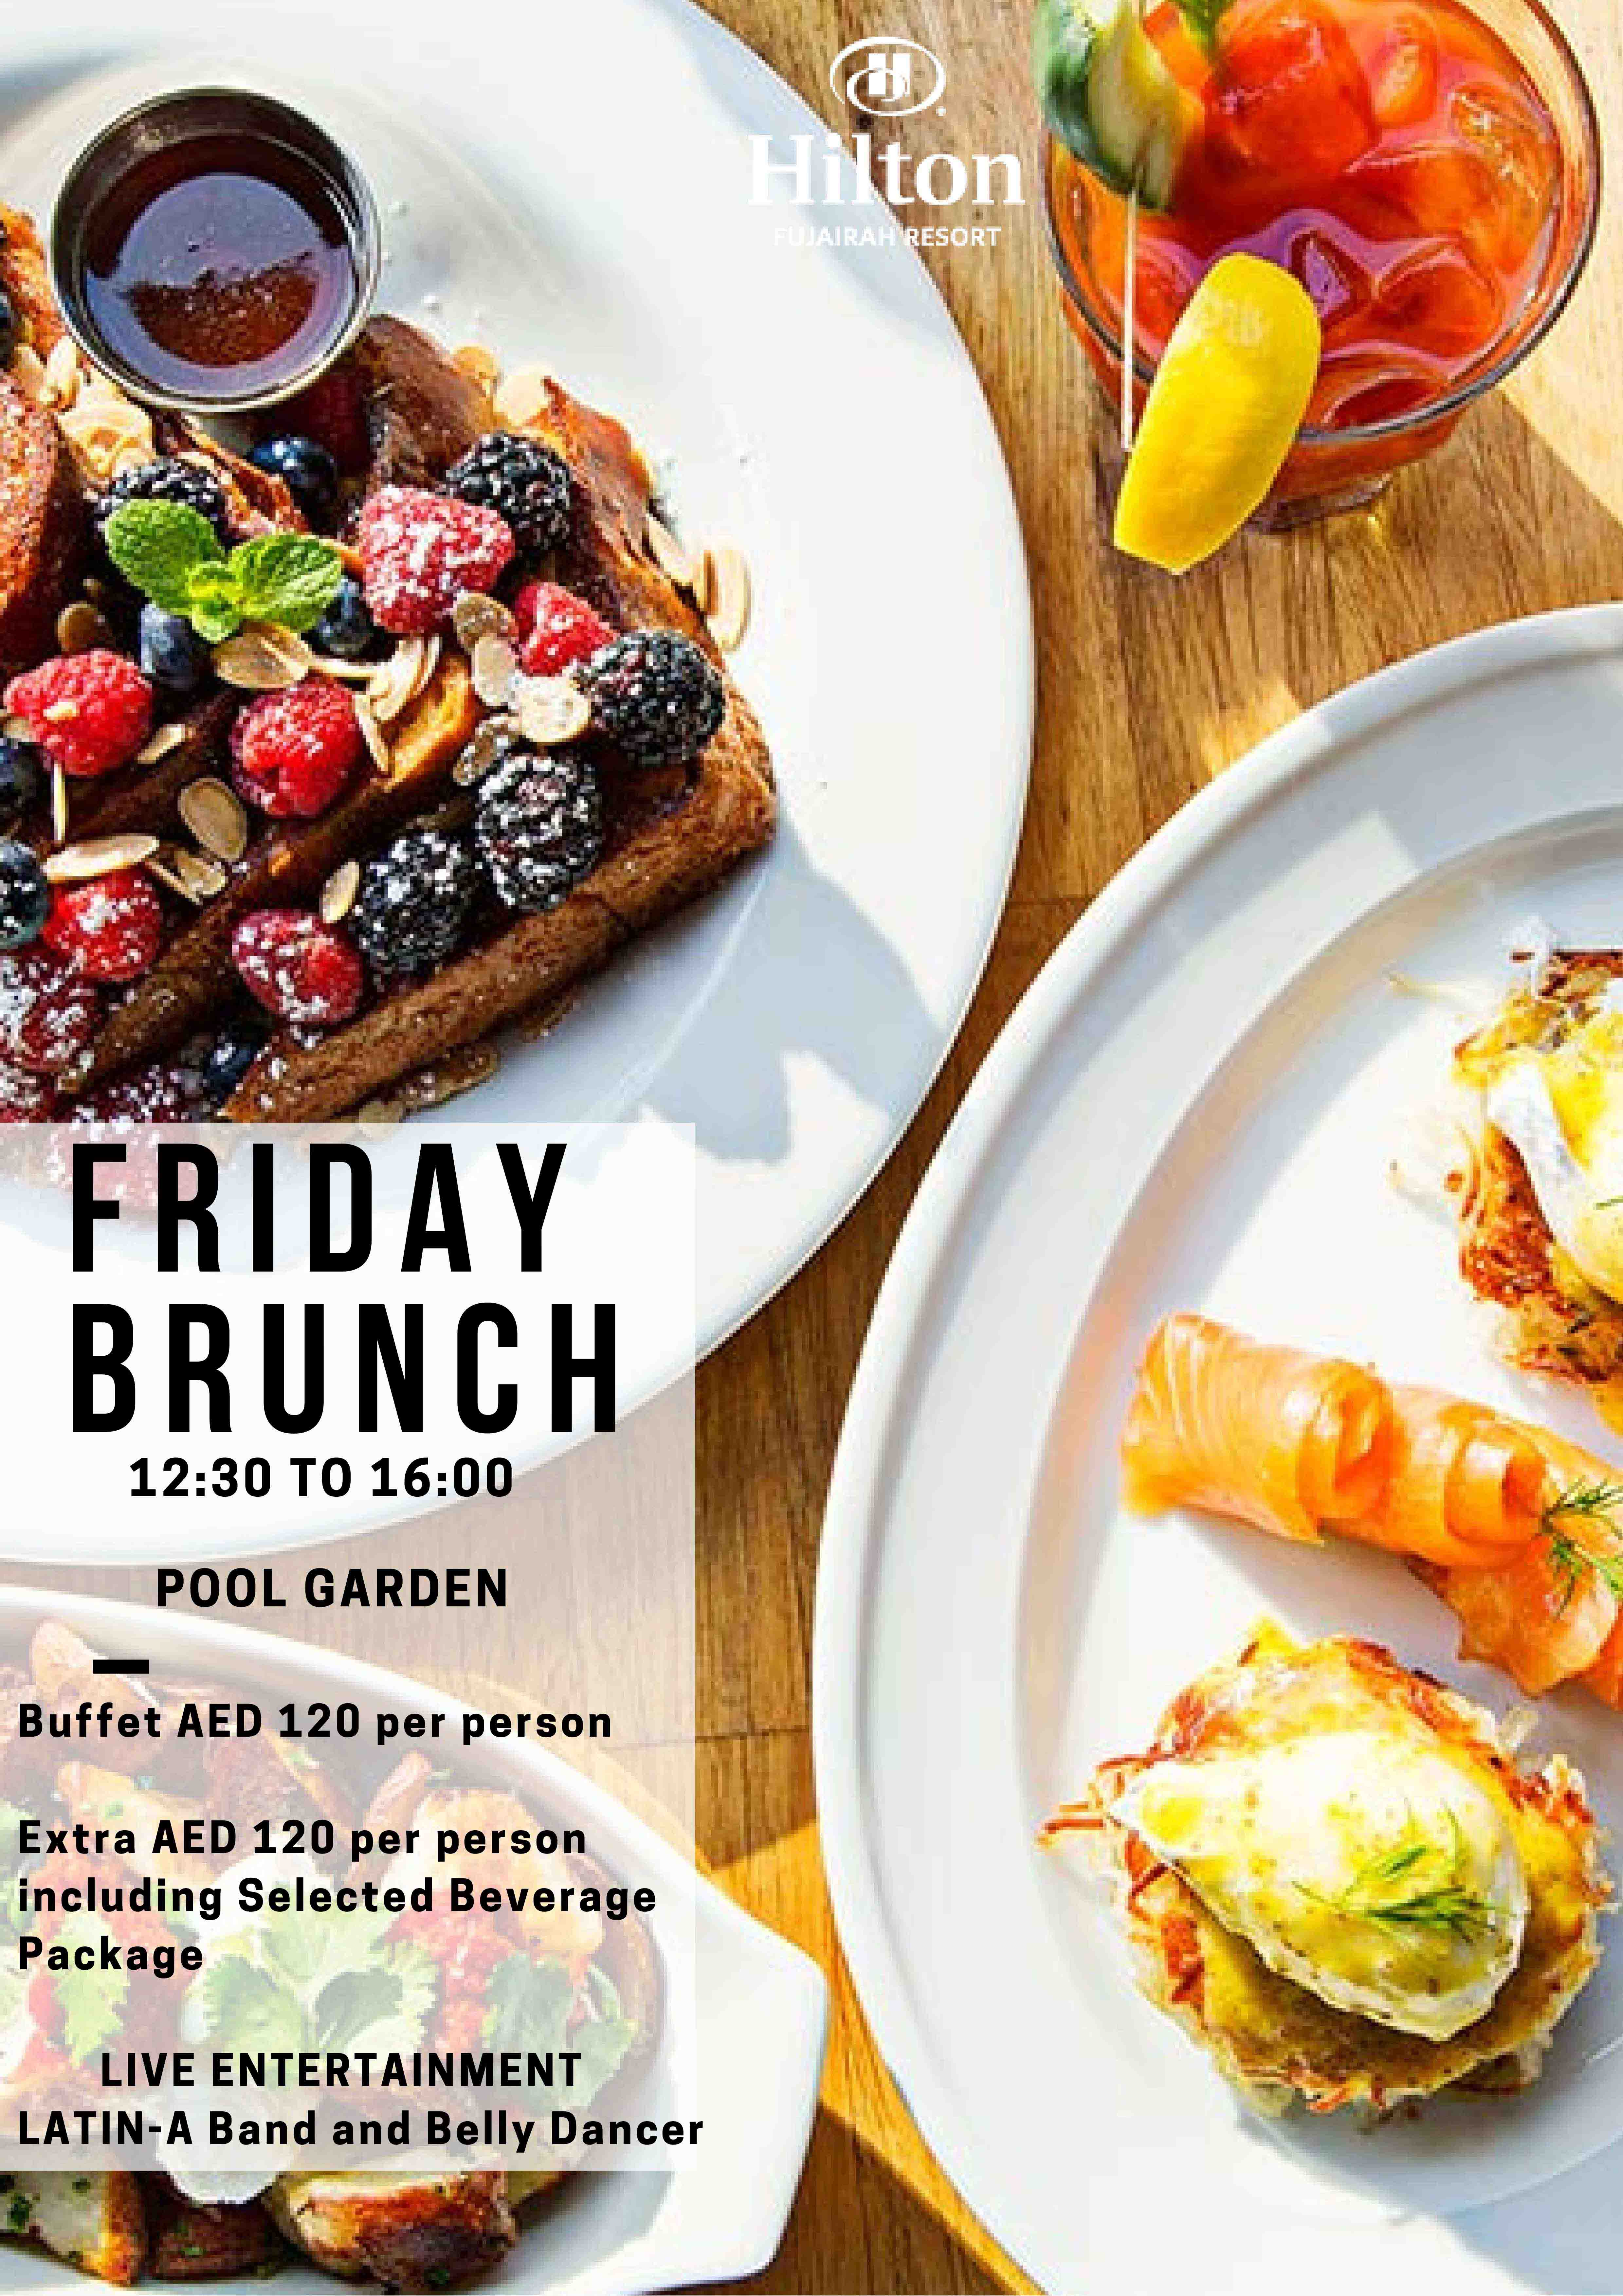 Friday Brunch in the Pool Garden at Hilton Fujairah Resort